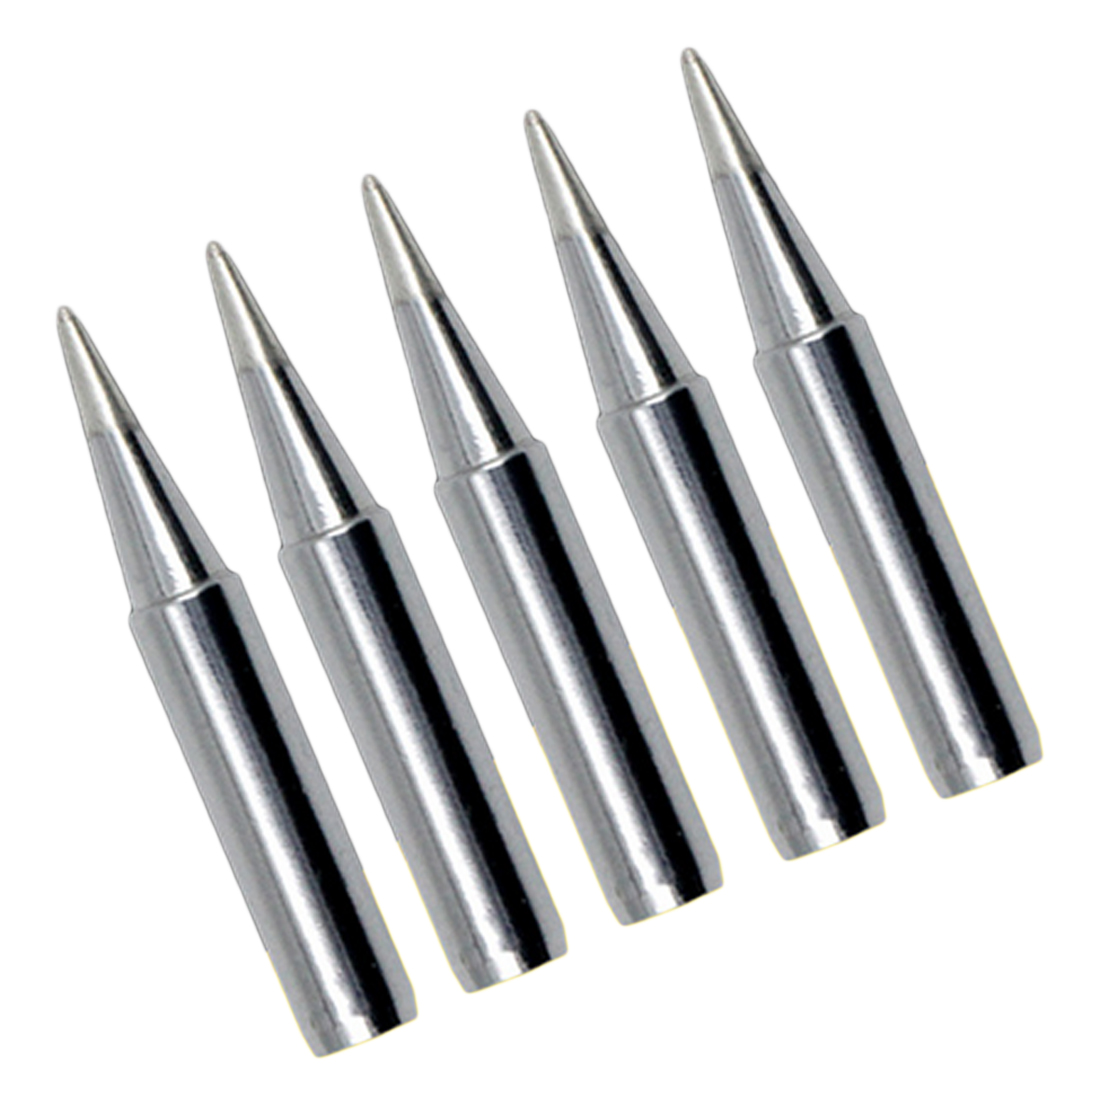 5pcs Solder Iron Tips Replacement 900m-T-B 1.2mm Point Solder Iron Tips Head For Soldering Repair Station